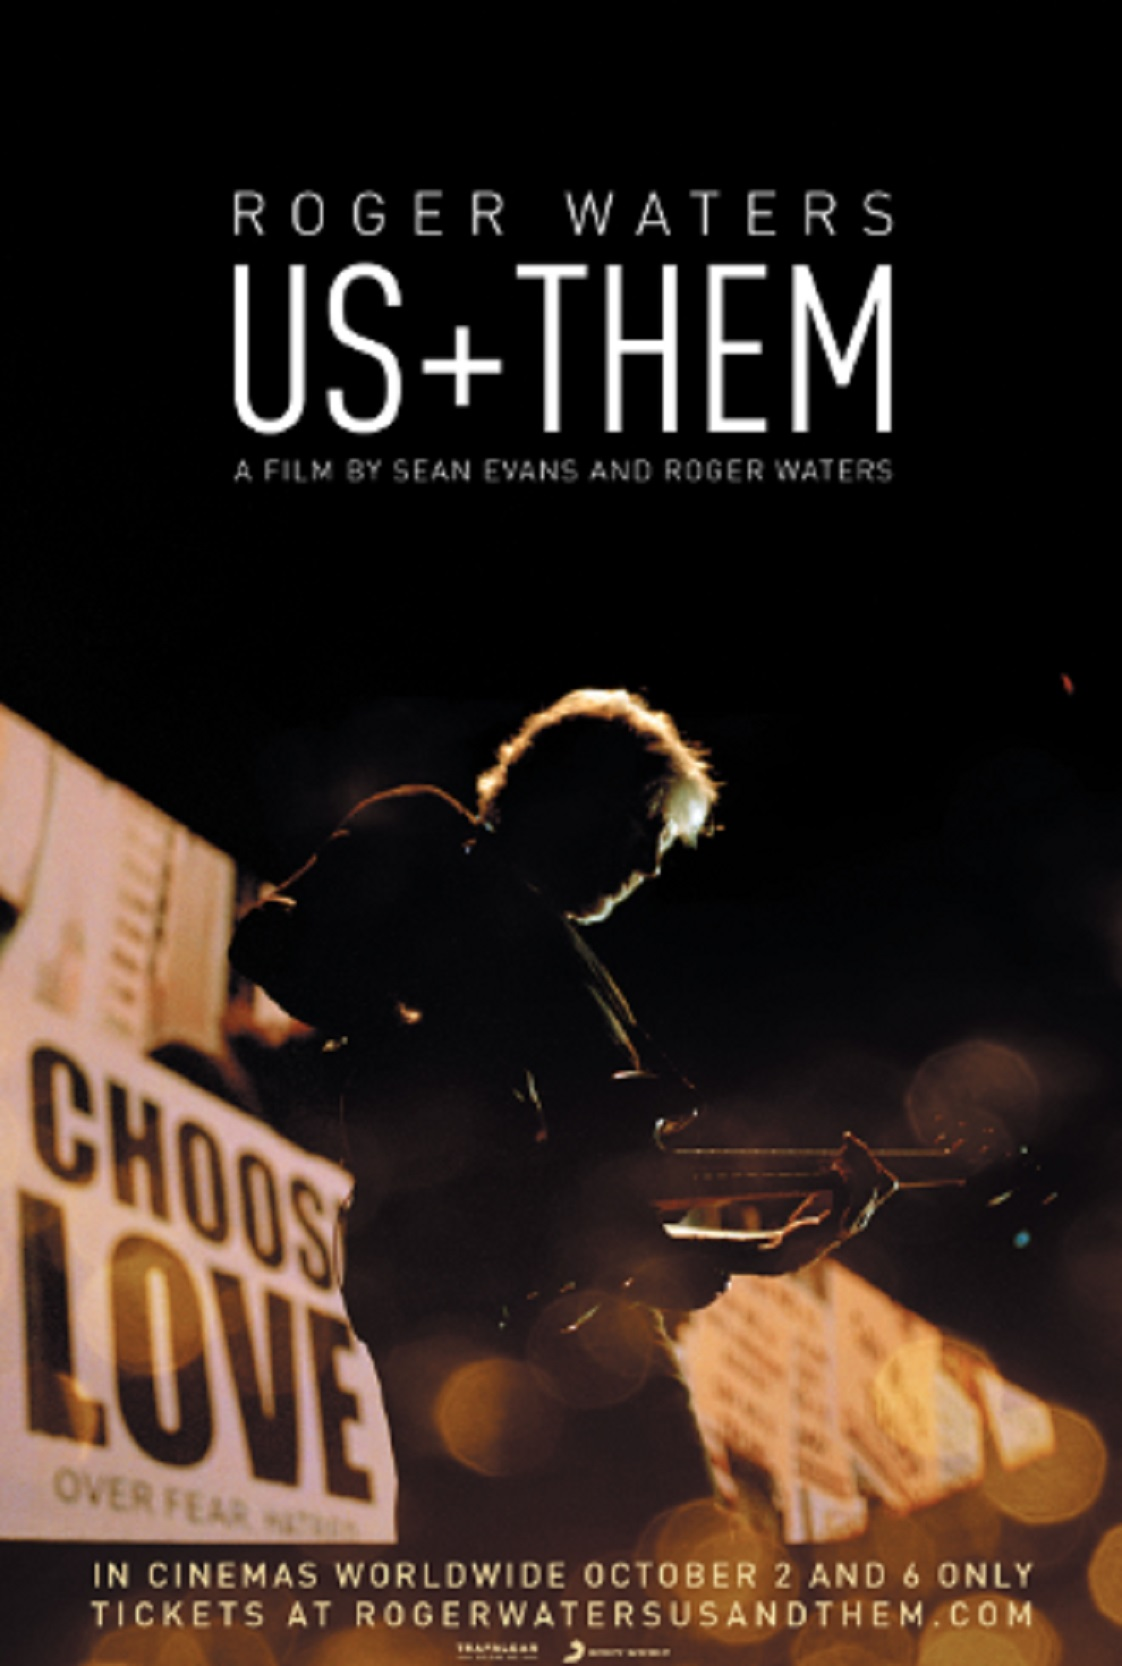 'Roger Waters Us + Them' Film - in theaters worldwide Oct. 2 & 6